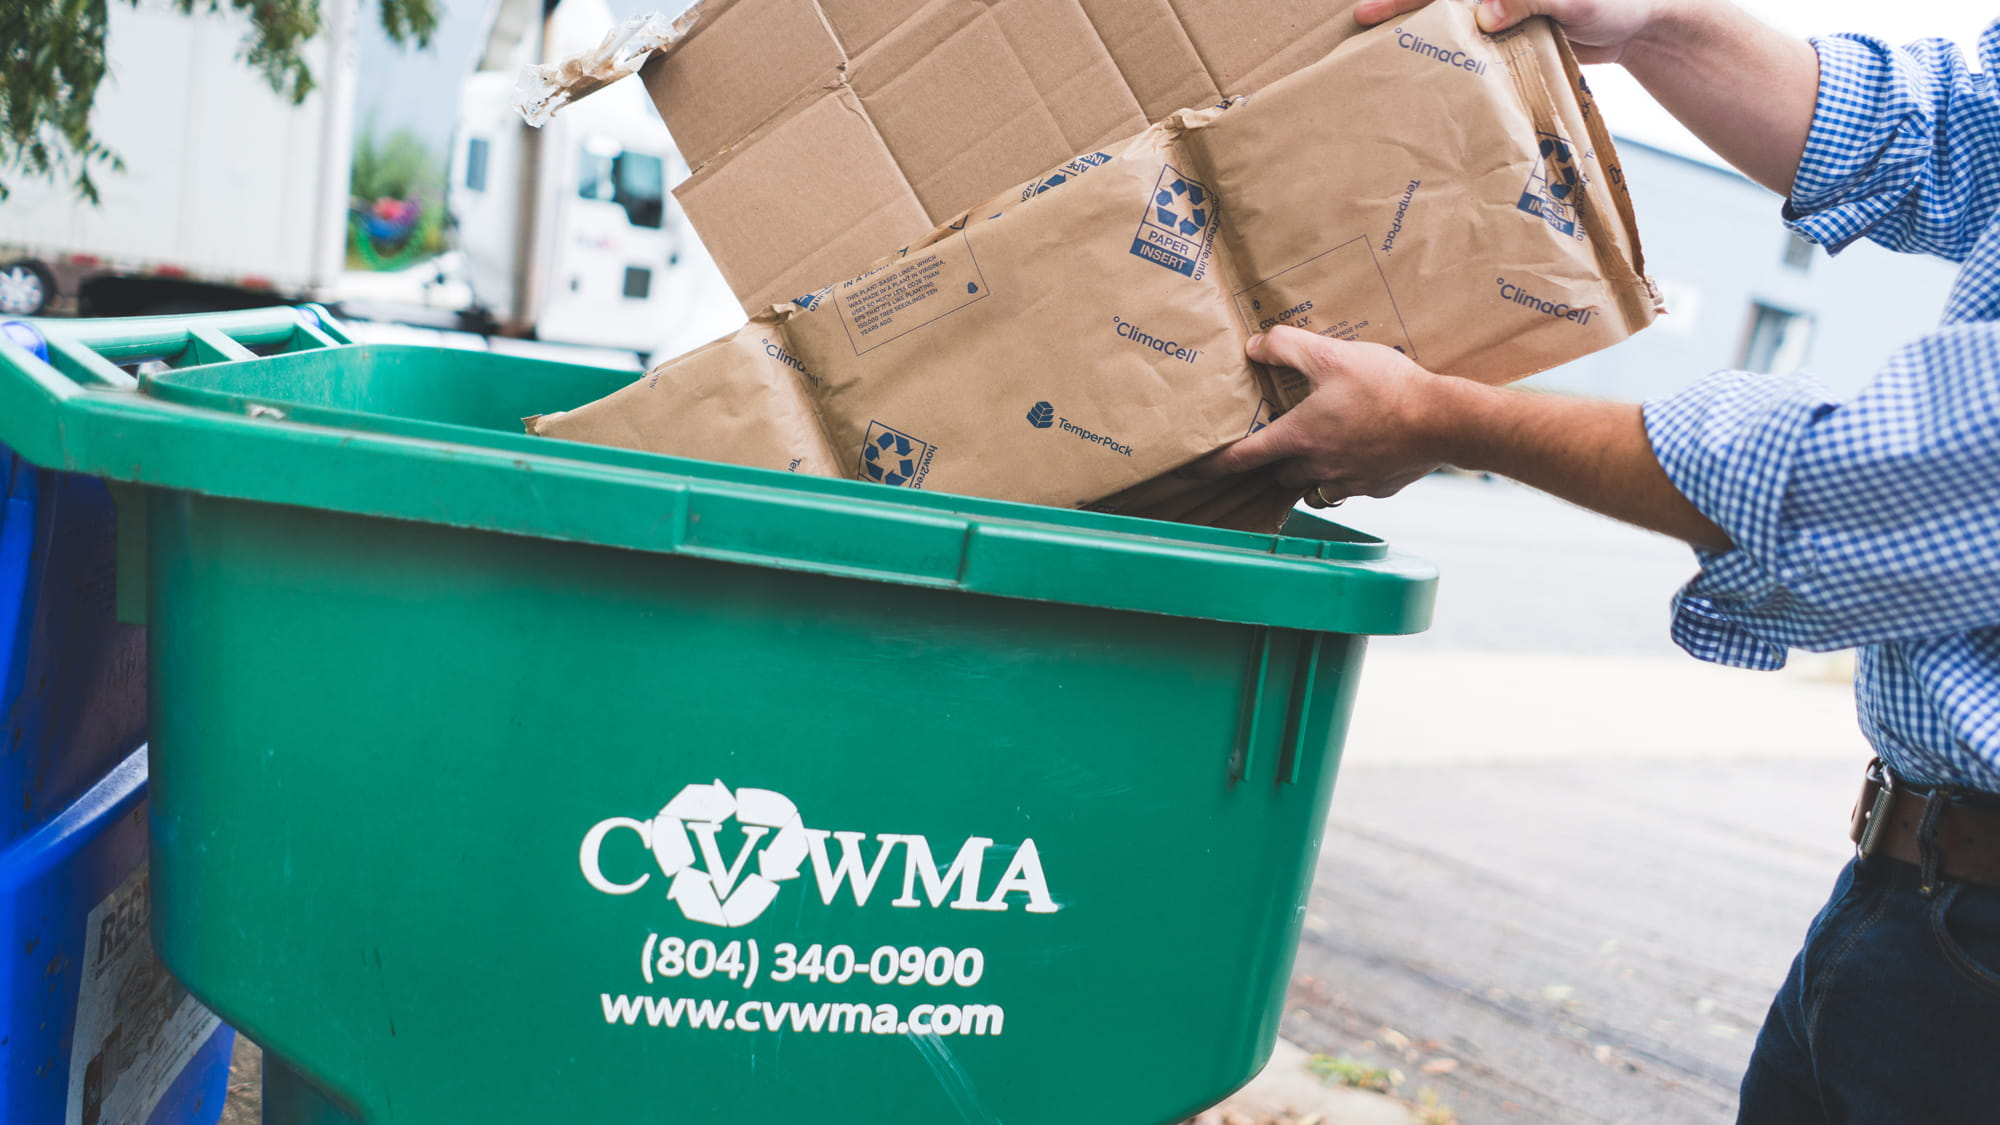 Widely Recyclable designation